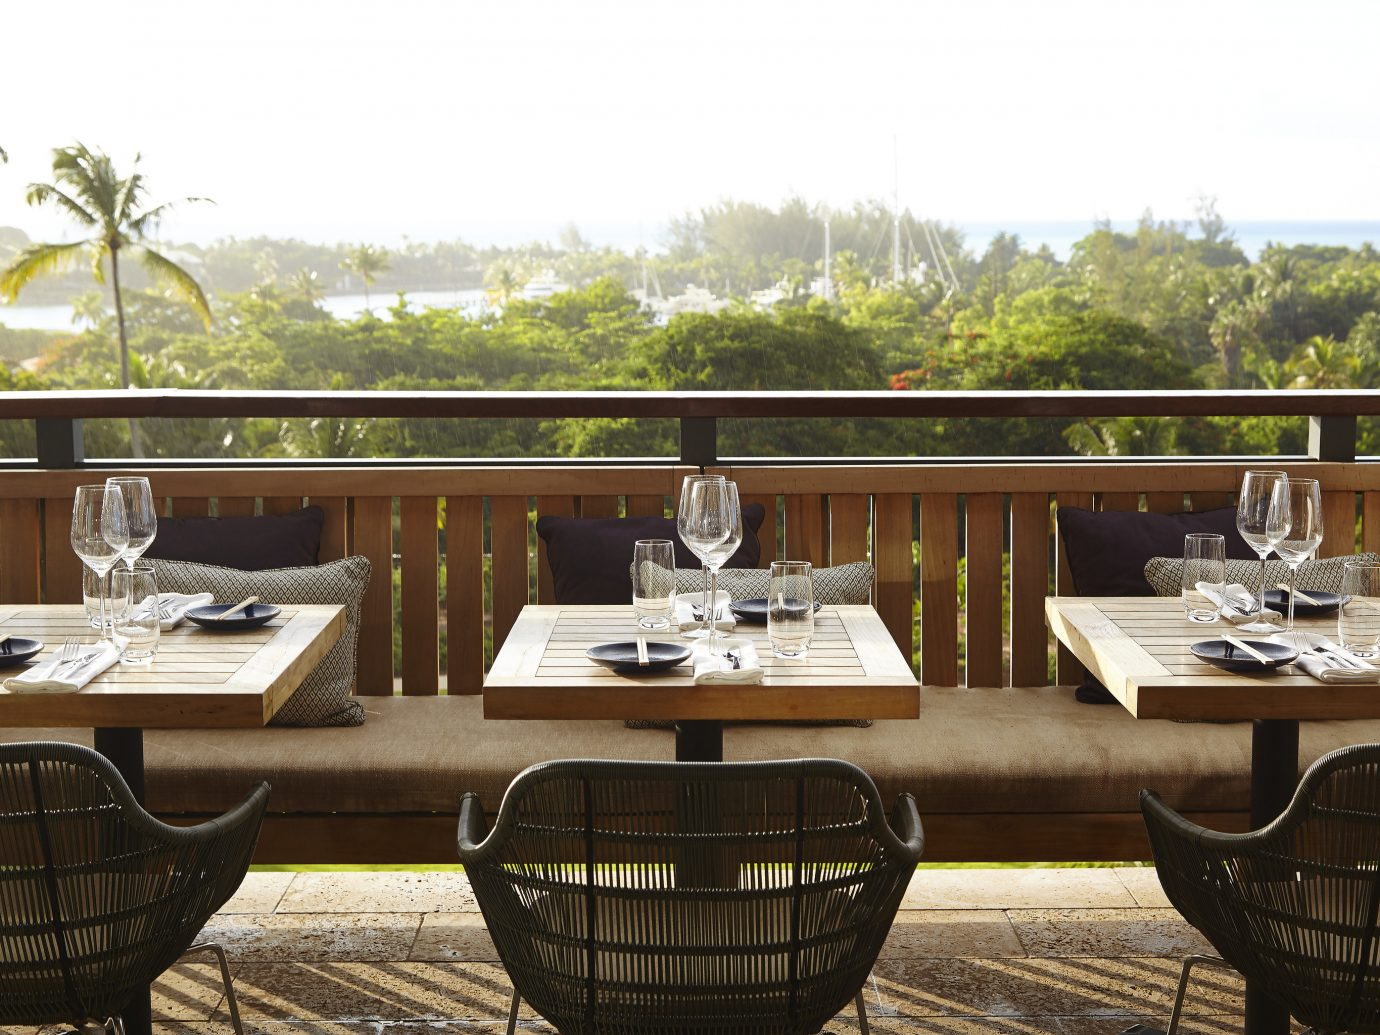 Outdoor dining at The Island House